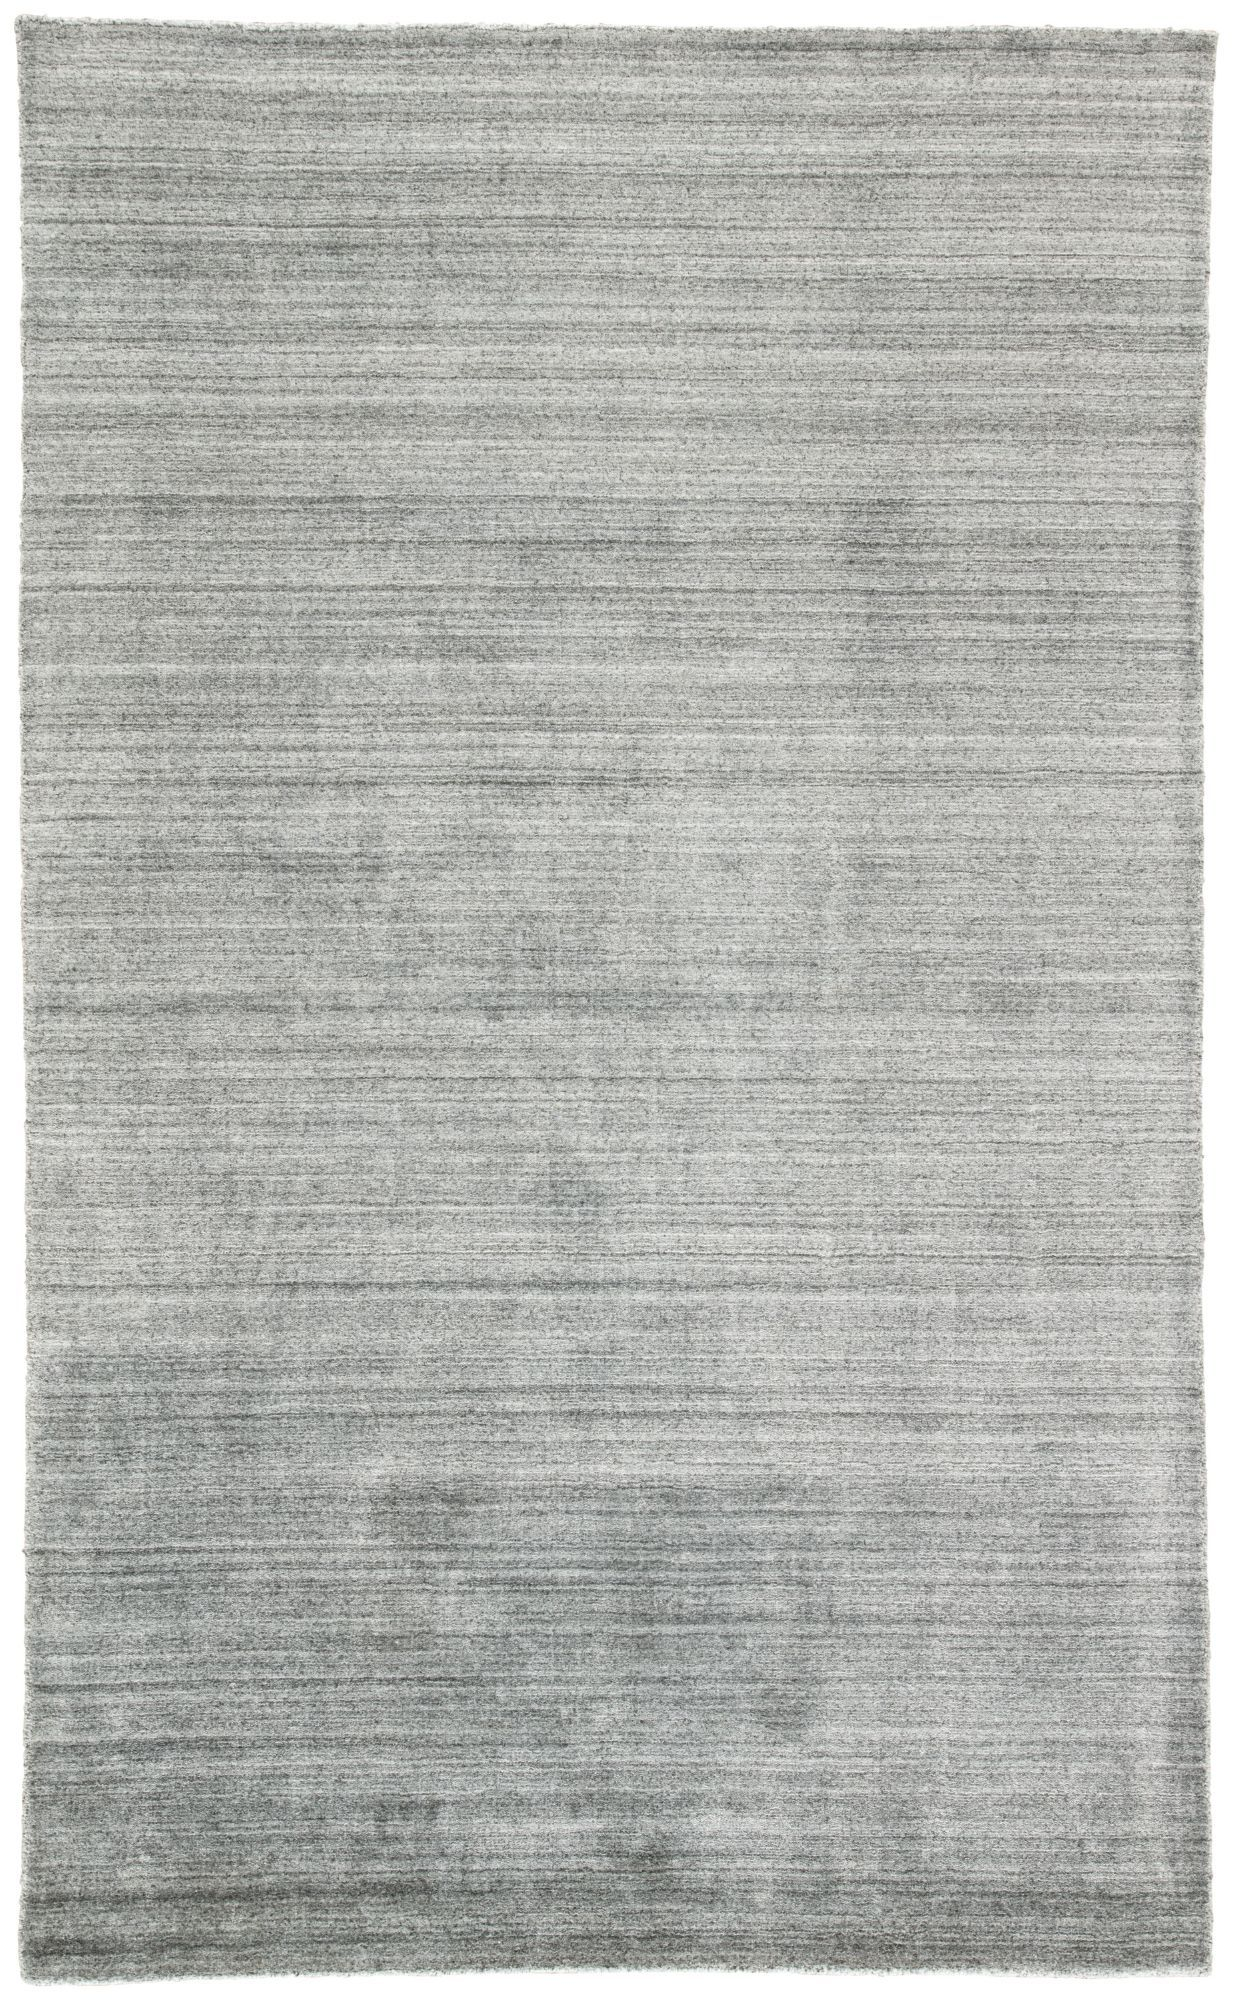 10′ x 14′ Gray and Black Solid Hand Woven Rectangular Area Throw Rug